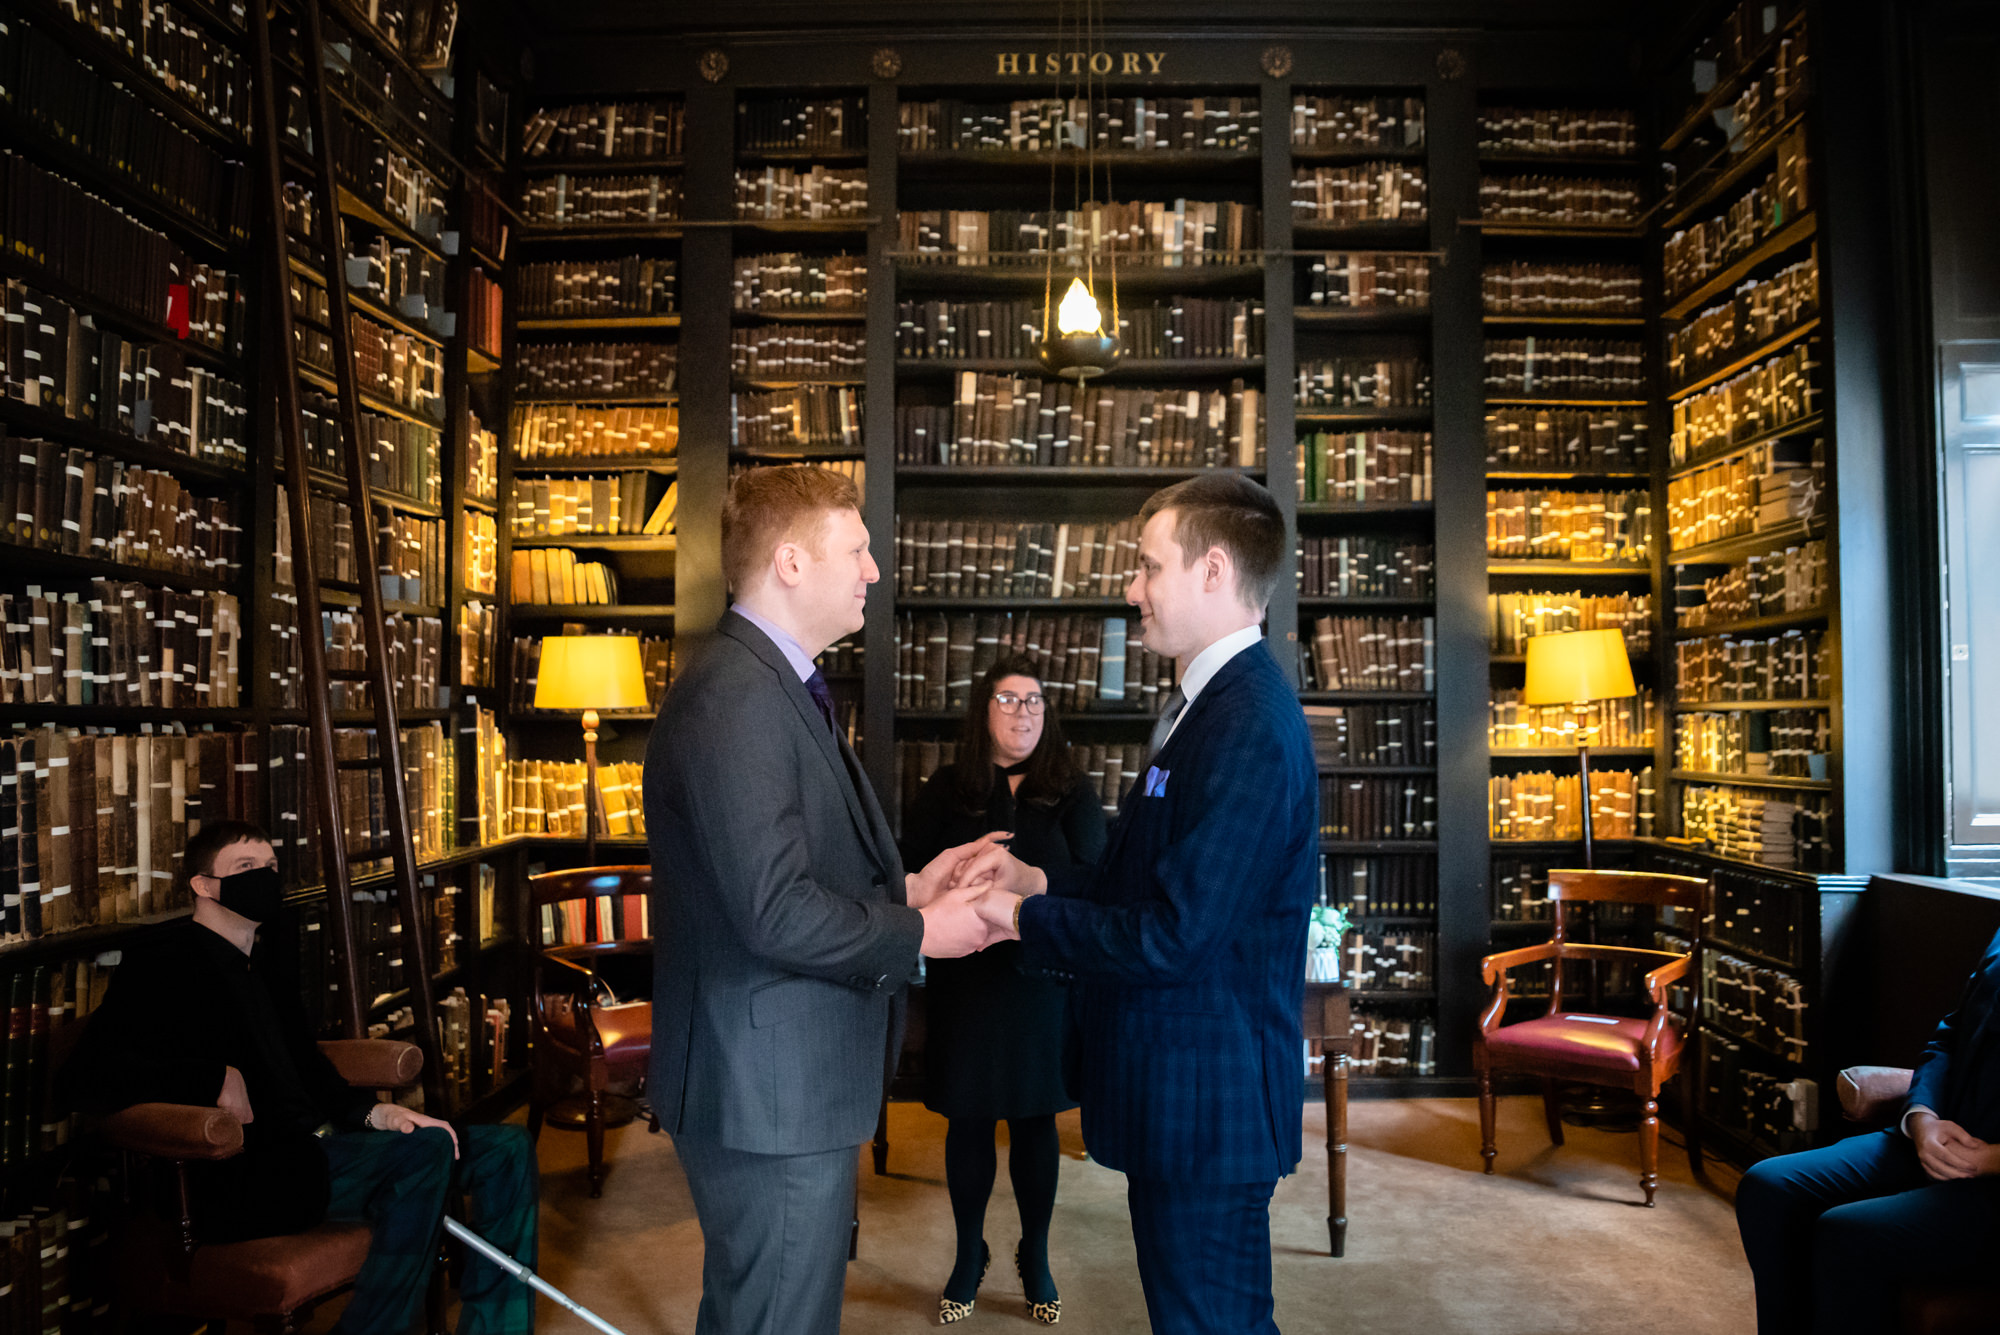 Grooms exchanging vows at The Portico Library